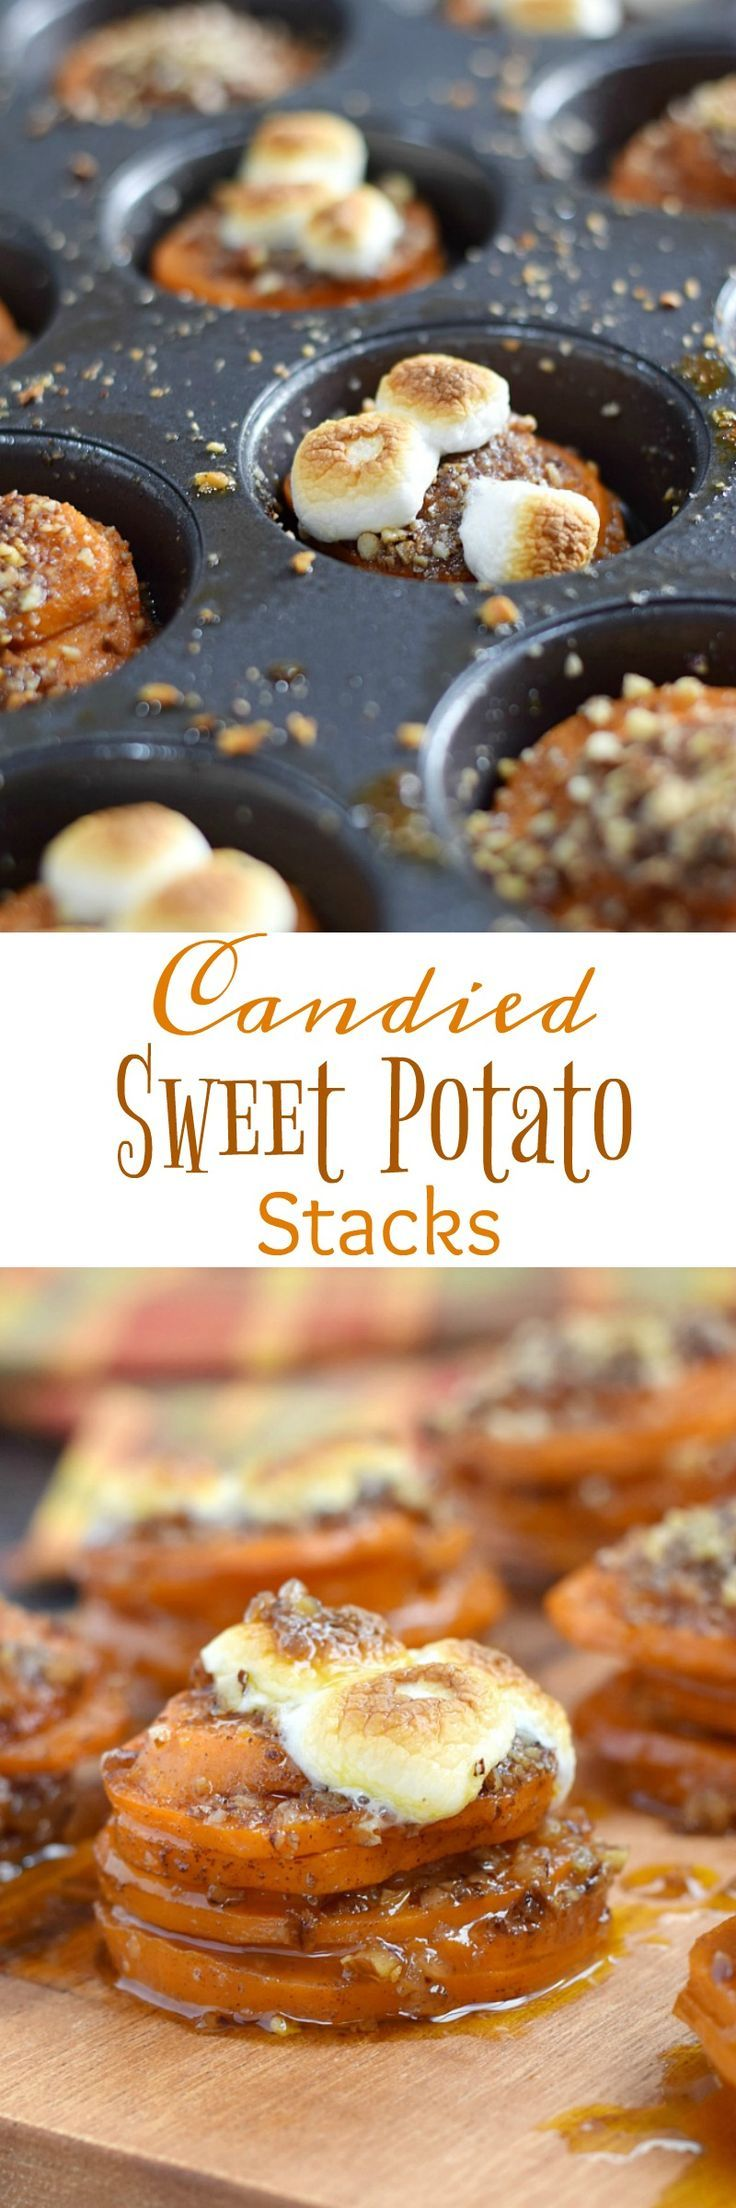 These Candied Sweet Potato Stacks are a fun twist on everyone's favorite holiday side dish